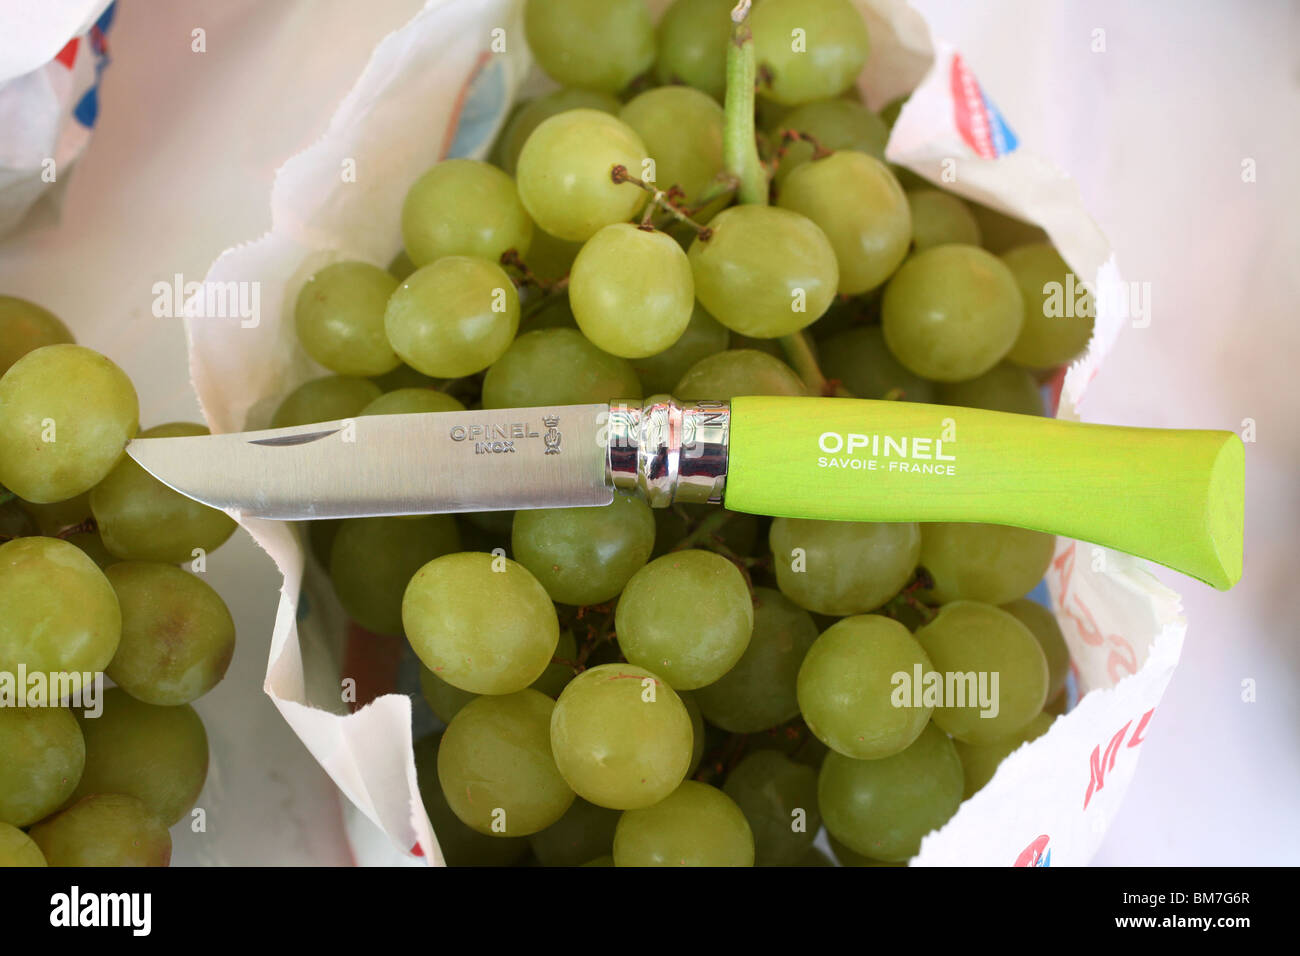 Opinel knife on grapes - Stock Image